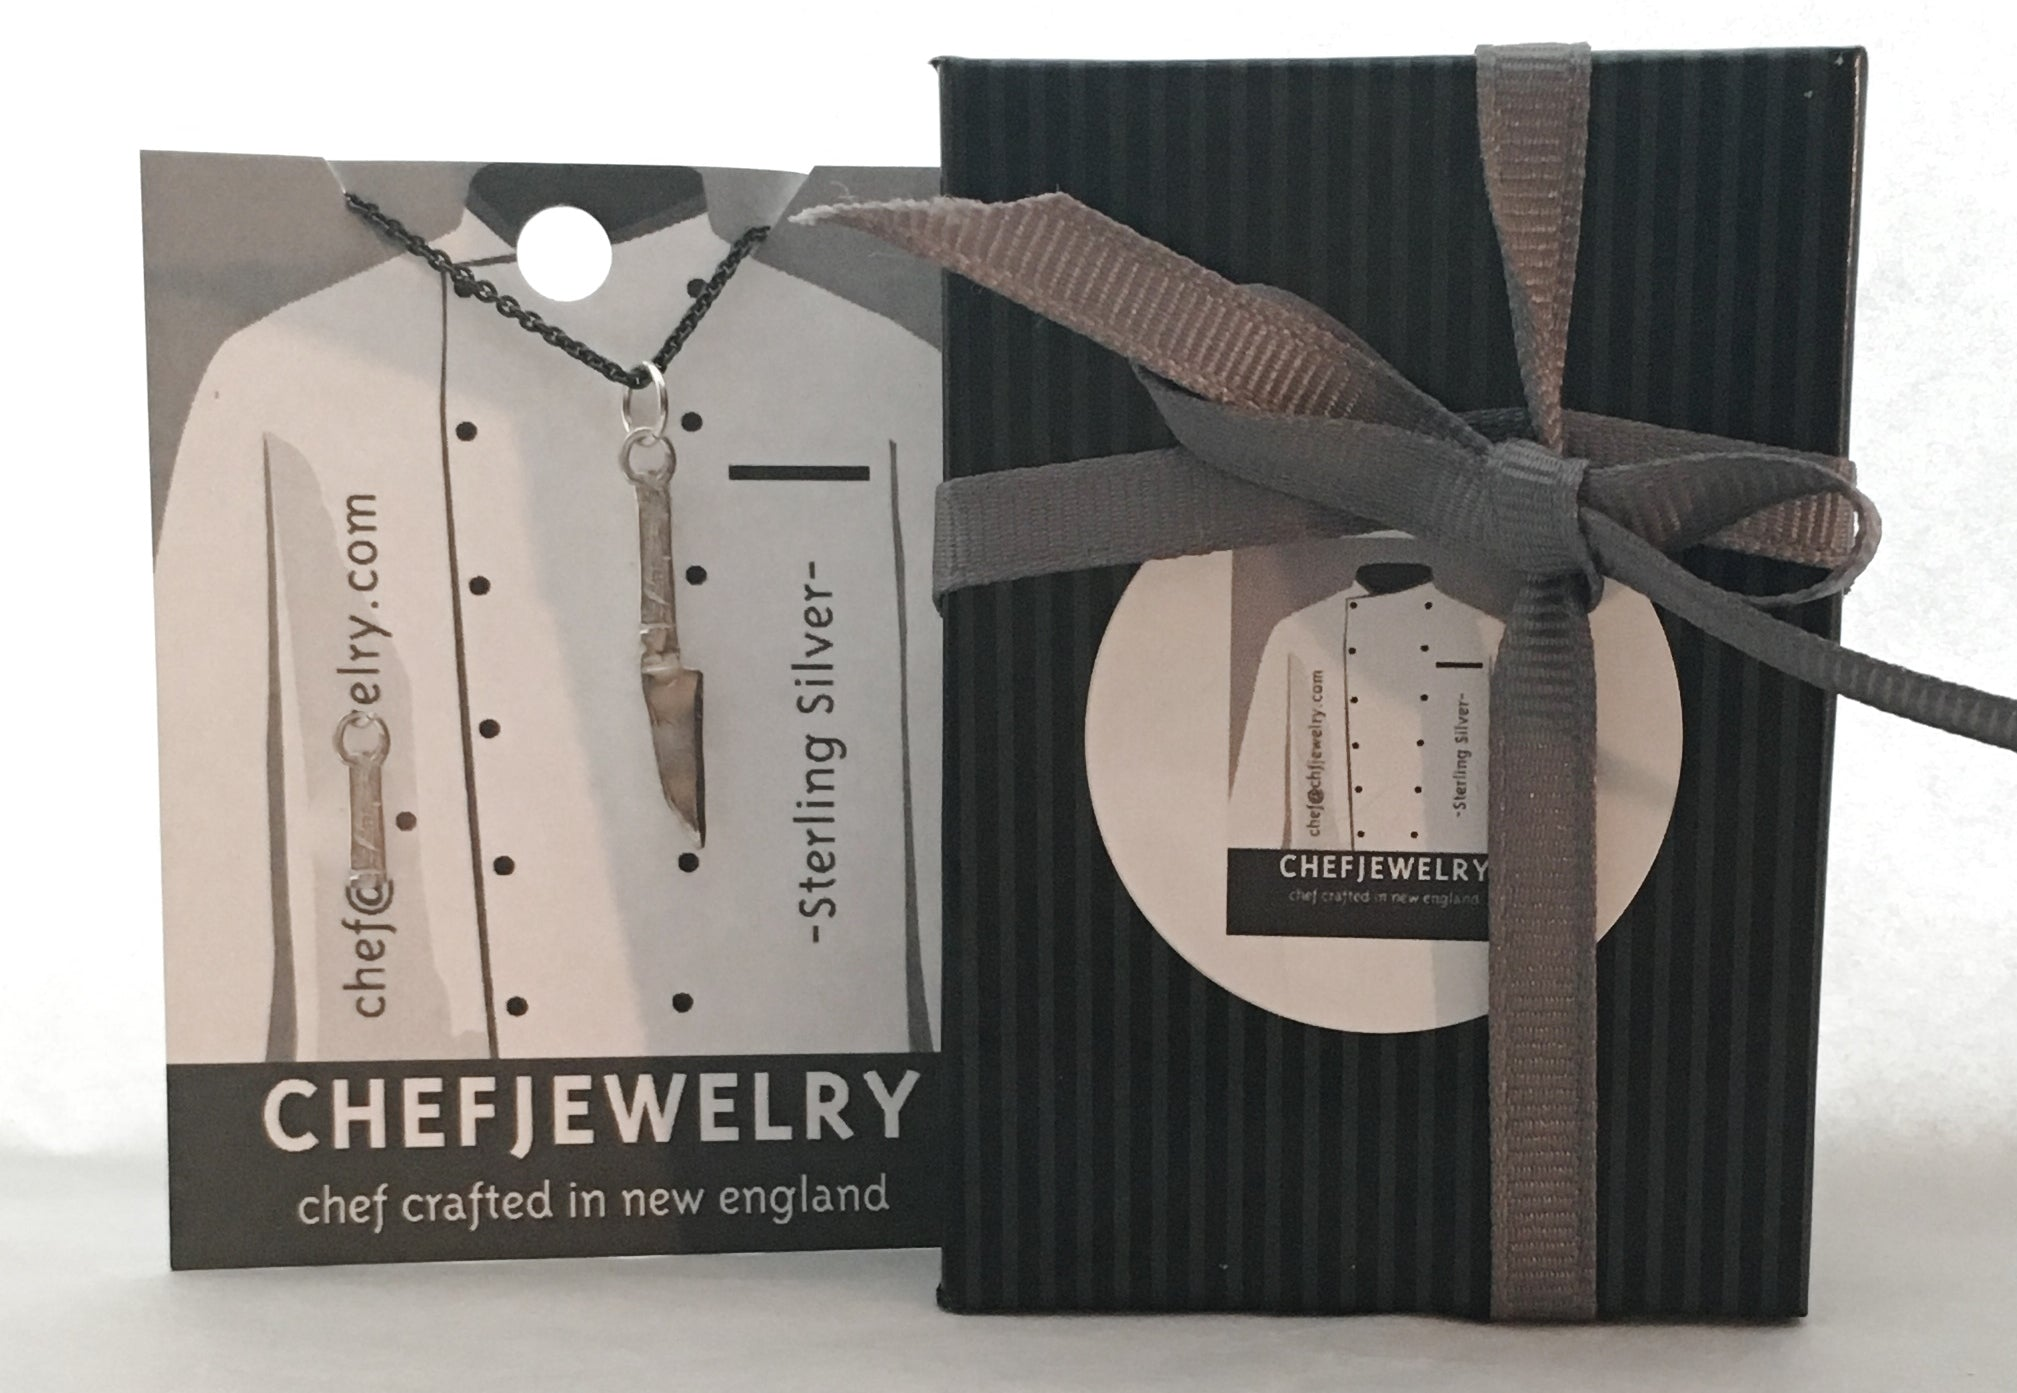 Your ring will arrive in this custom ChefJewelry packaging